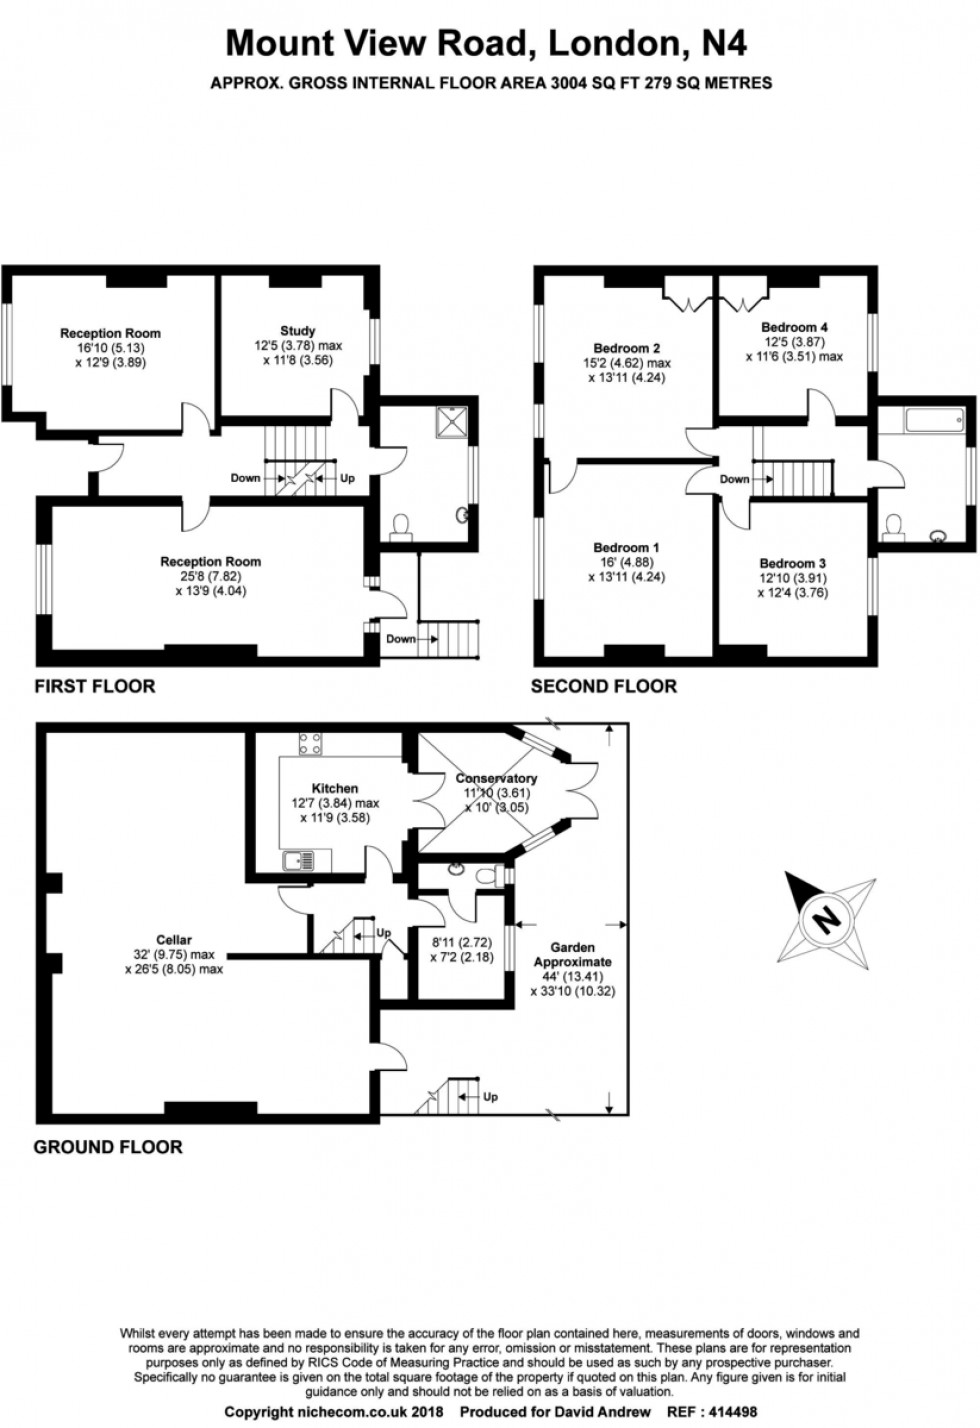 Floorplan for Mount View Road, London